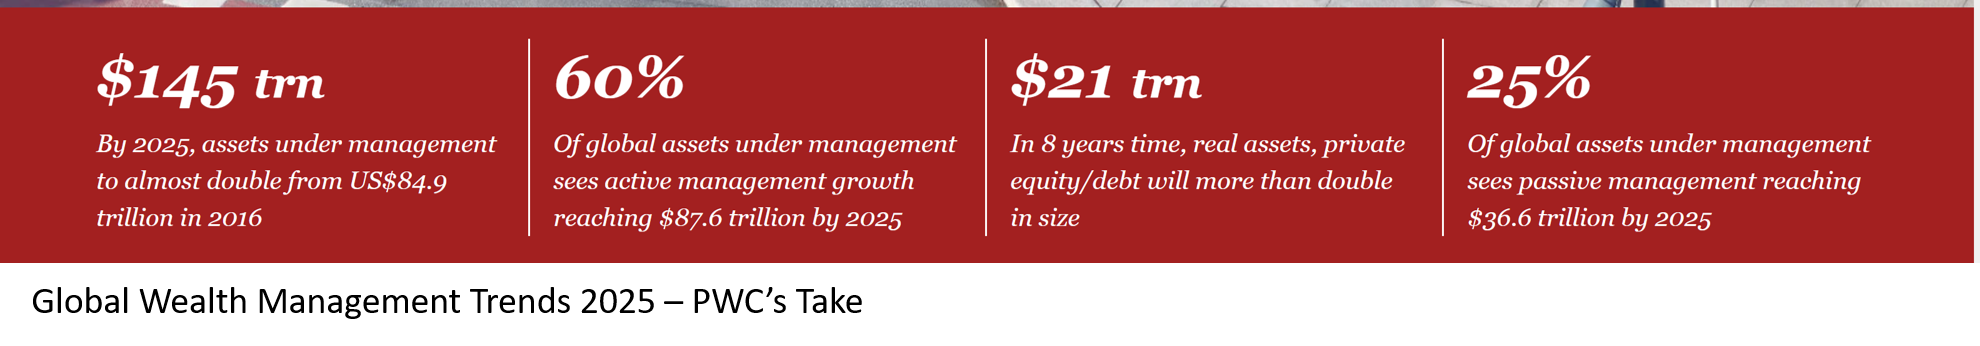 Wealth Management Trends 2025 - PWCs take